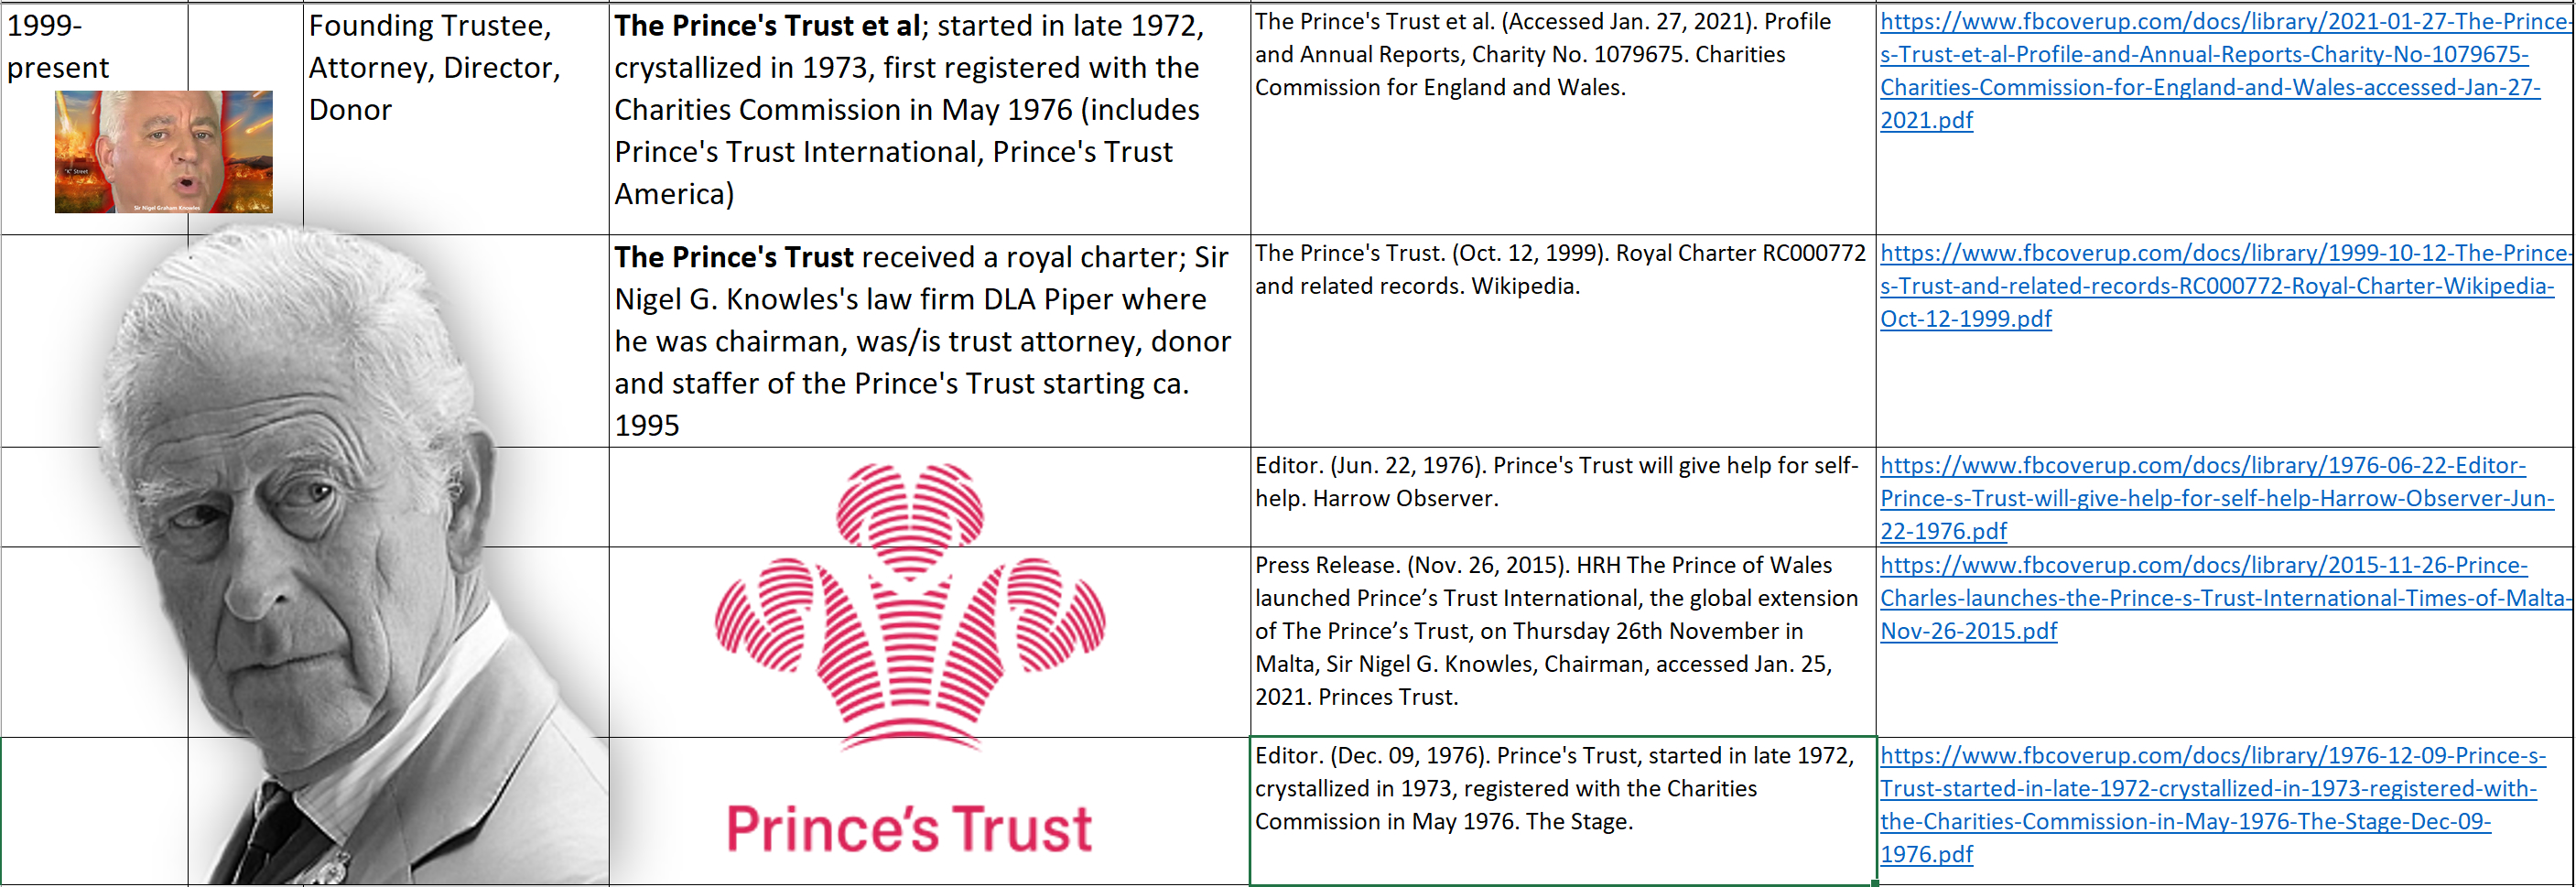 Sir Nigel Graham Knowles. (Compiled Feb. 09, 2021). Biography and Timeline, p. 6. Anonymous Patriots.